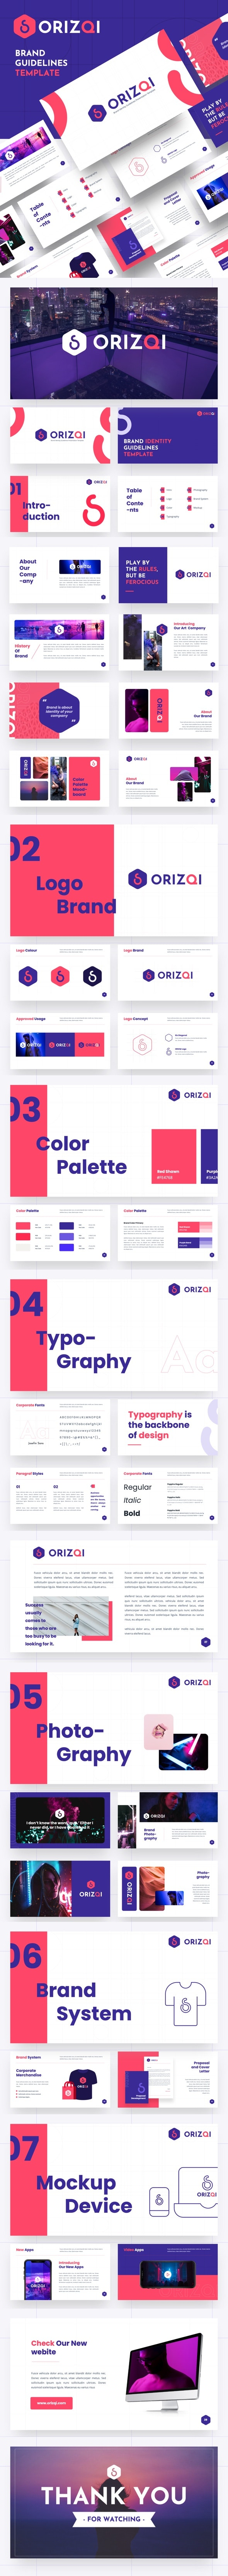 Orizqi - Brand Identity Guidelines Keynote Template - Business Keynote Templates